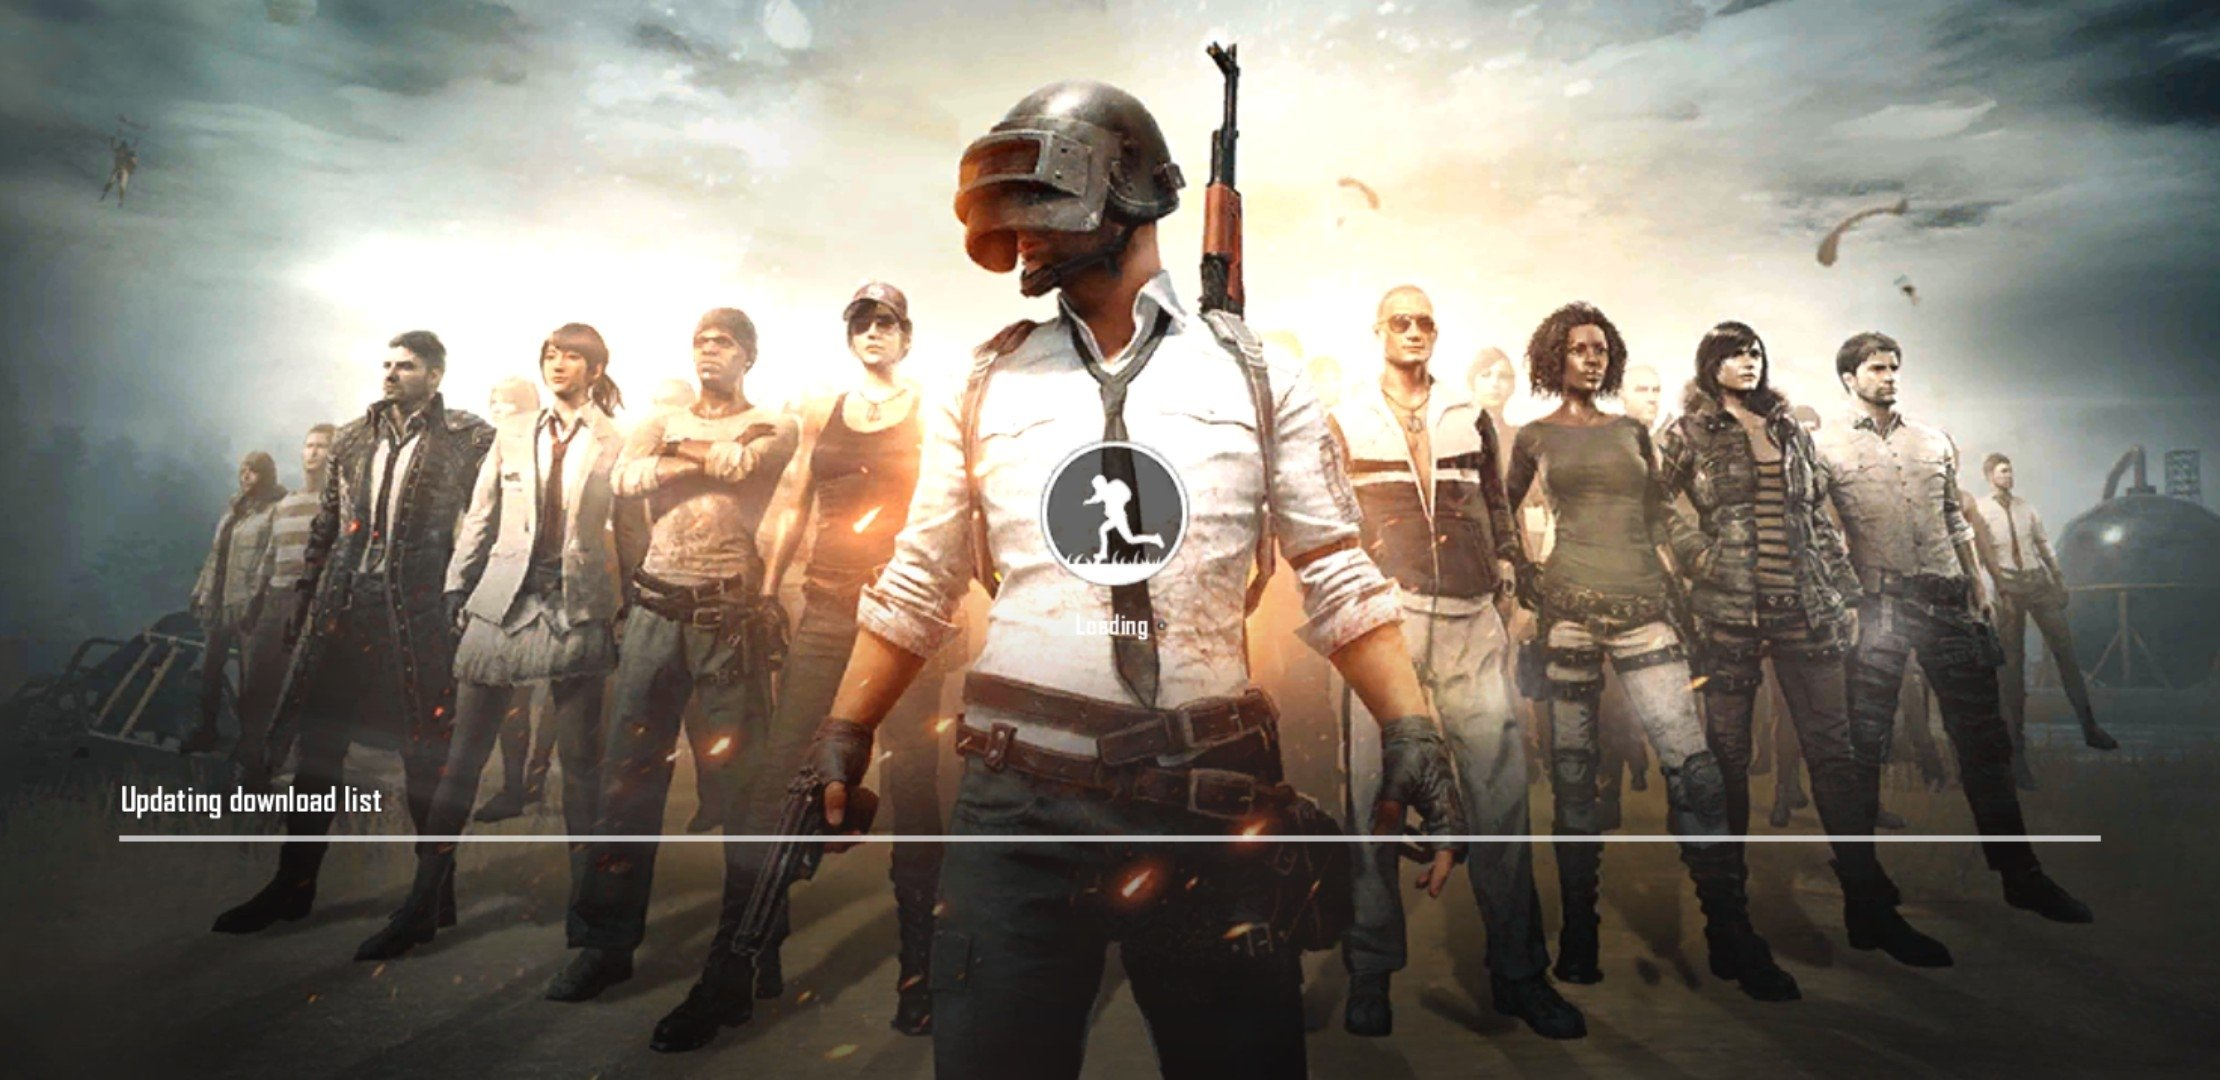 Pubg Mob!   ile Lite 0 10 0 Download For Android Free - pubg mobile lite image 3 th!   umbnail